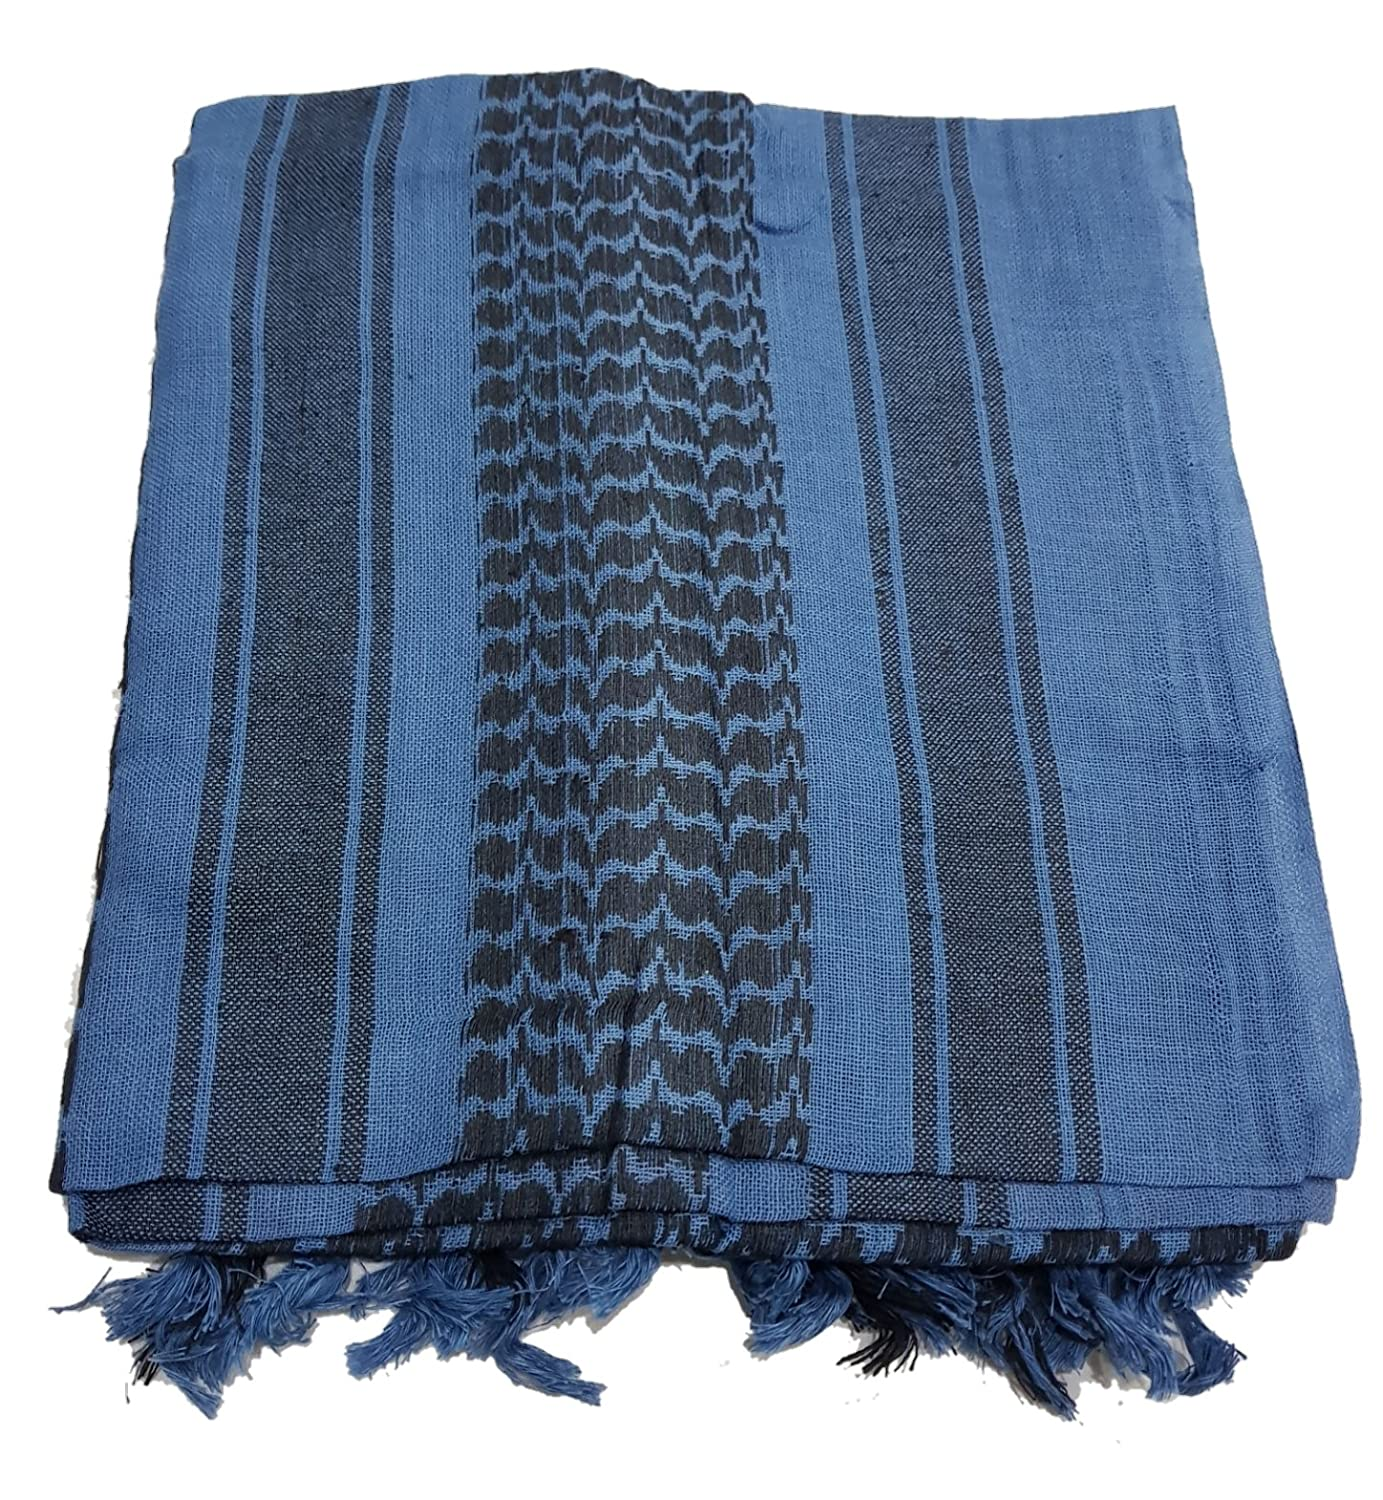 100% Cotton Black and Blue Shemagh Arab Keffiyeh Headscarf Unisex Desert Shawl Hijab Scarf BLUEBLACKSHEMAGH